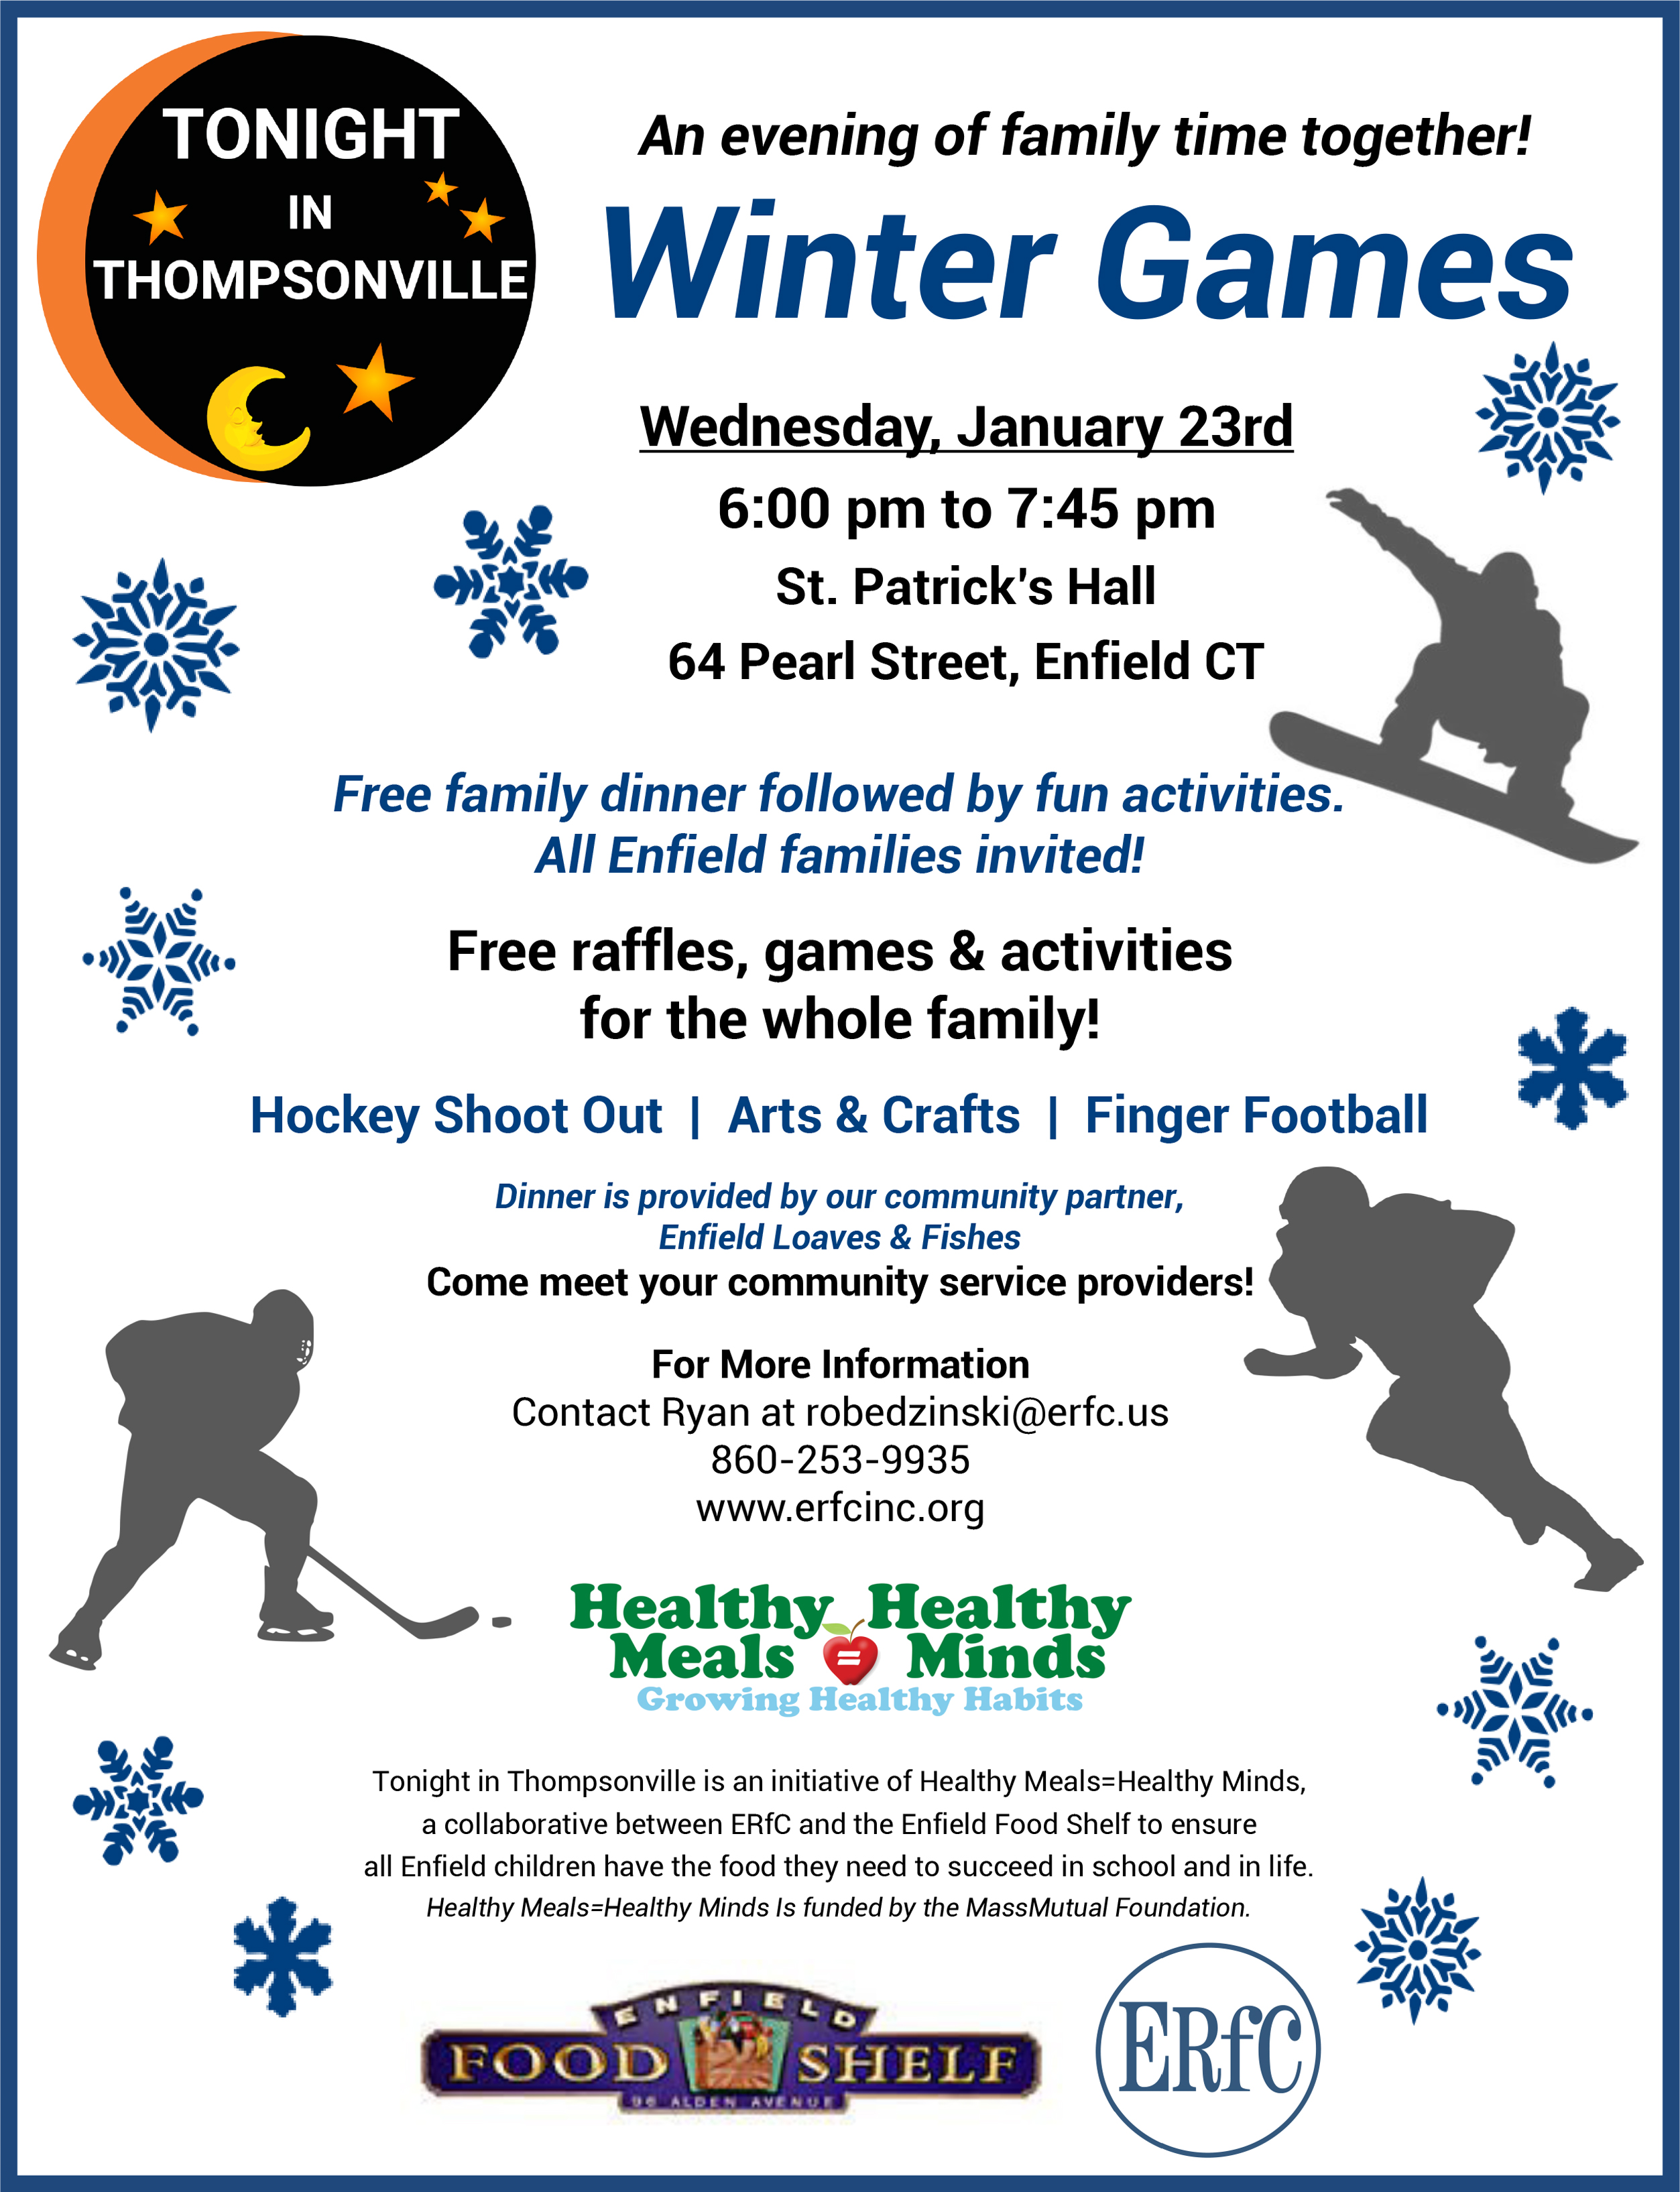 Tonight In Thompsonville - Winter Games @ St. Patricks Hall